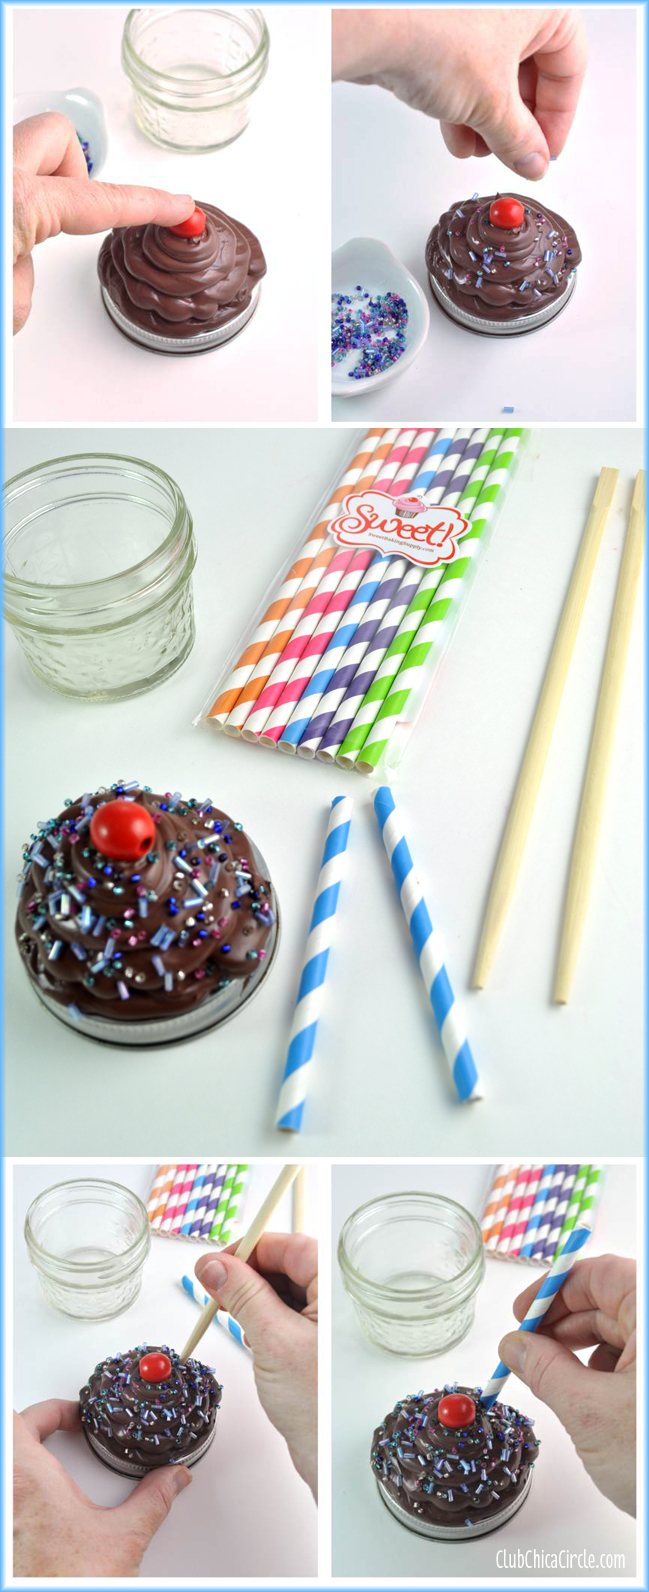 How to make a caulk cupcake mason jar gift